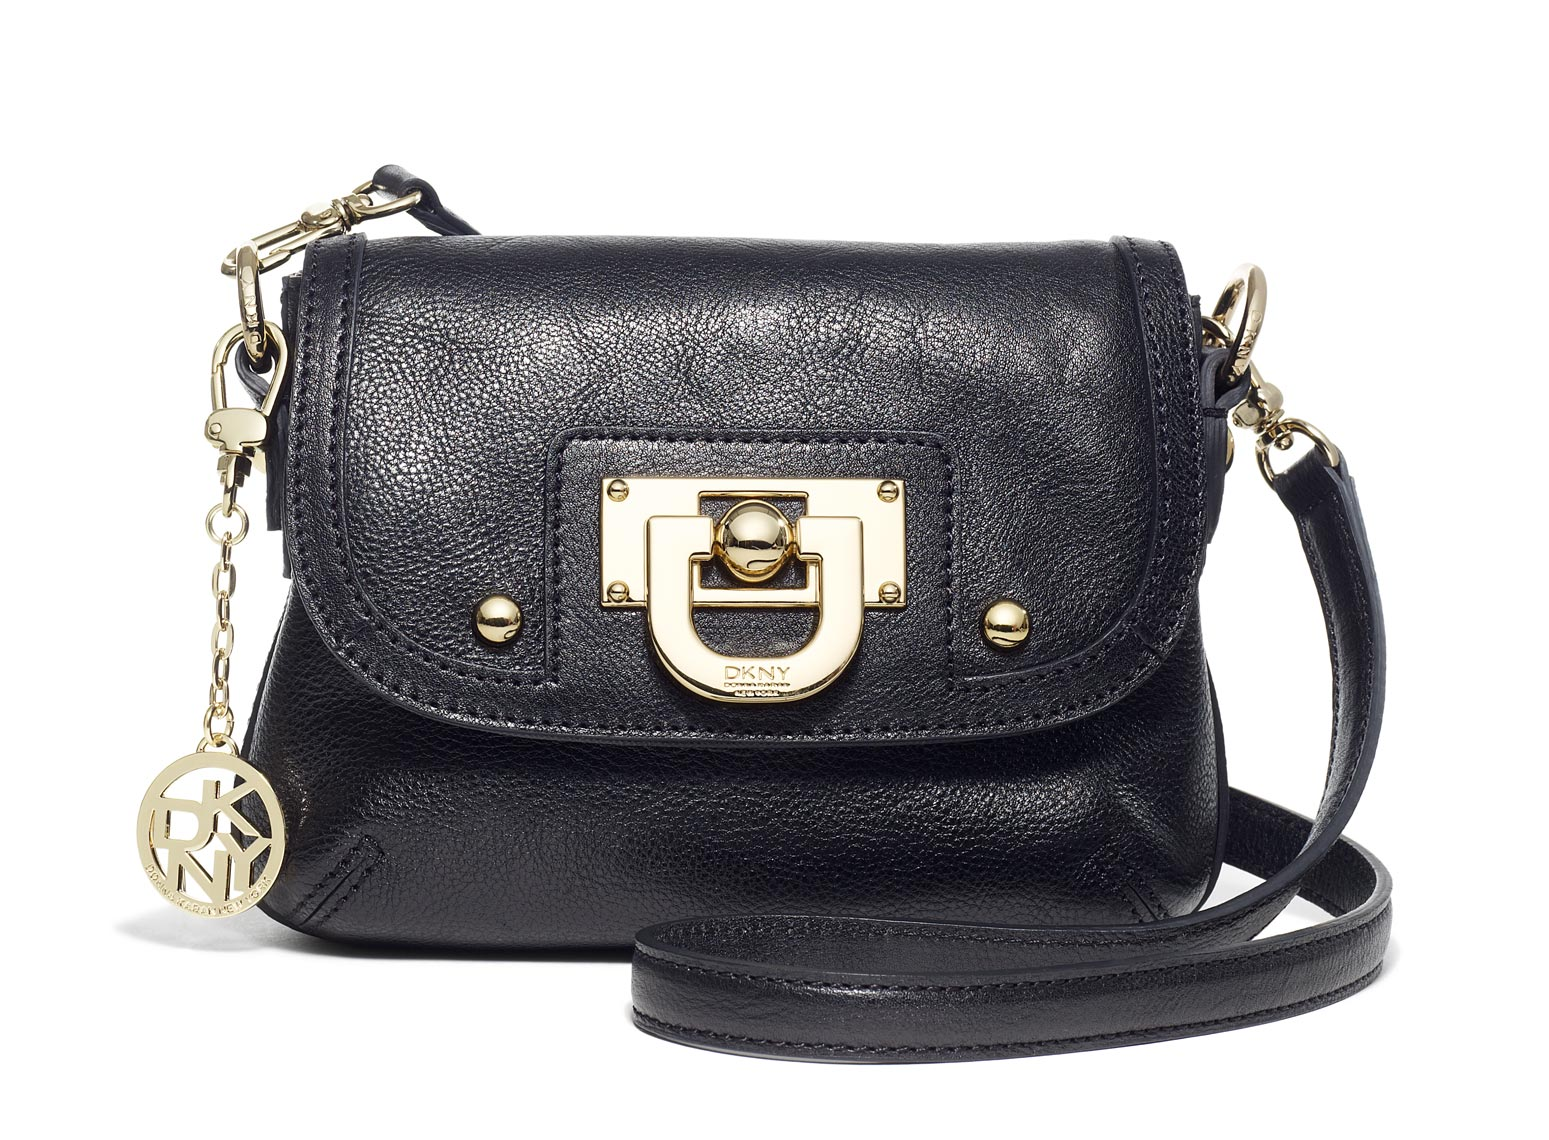 accessories_bags_dkny_black